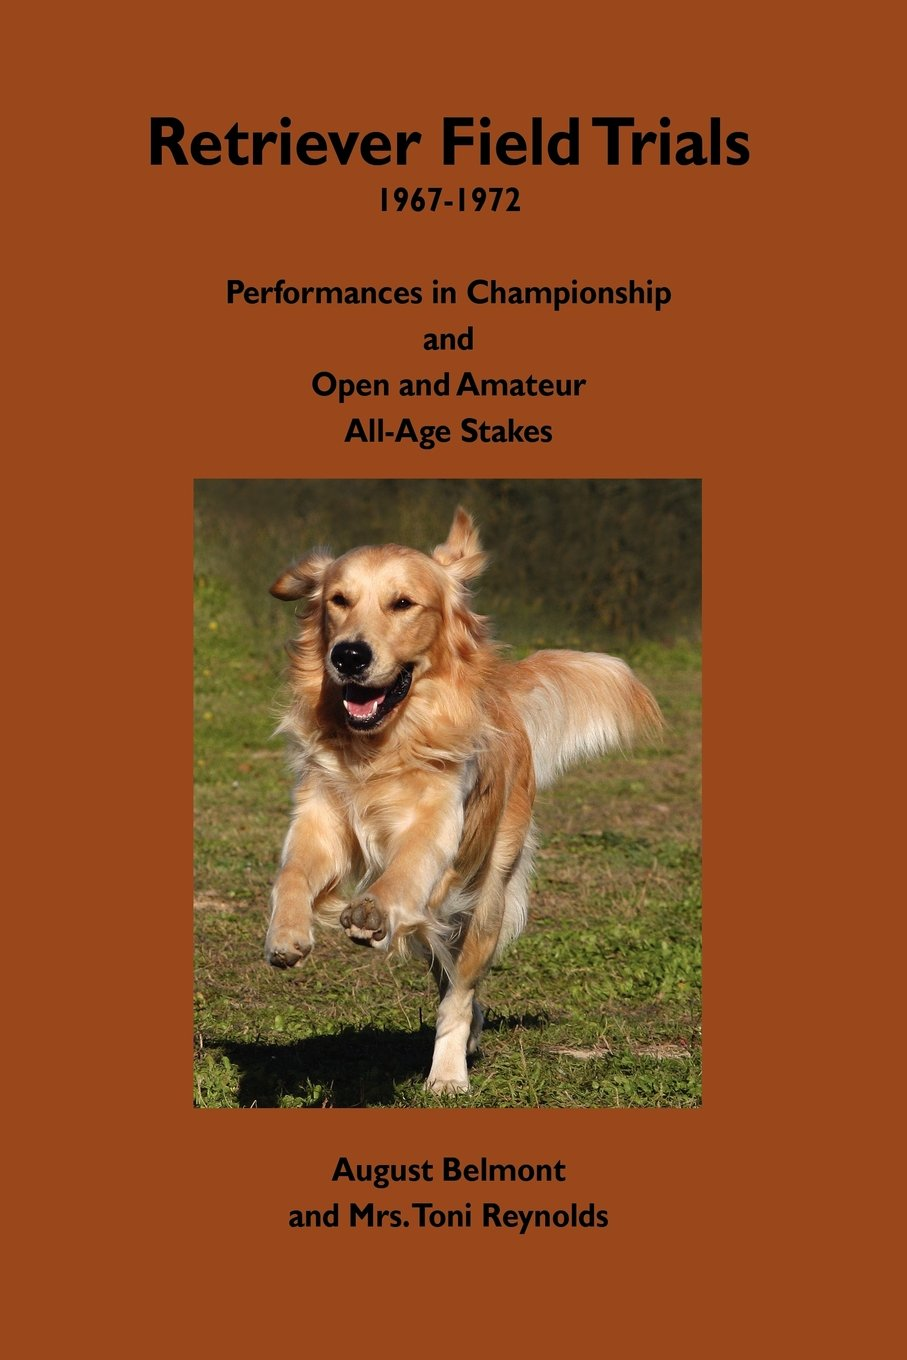 Download Retriever Field Trials 1967-1972: Performances in Championship and Open and Amateur All-Age Stakes PDF Text fb2 ebook